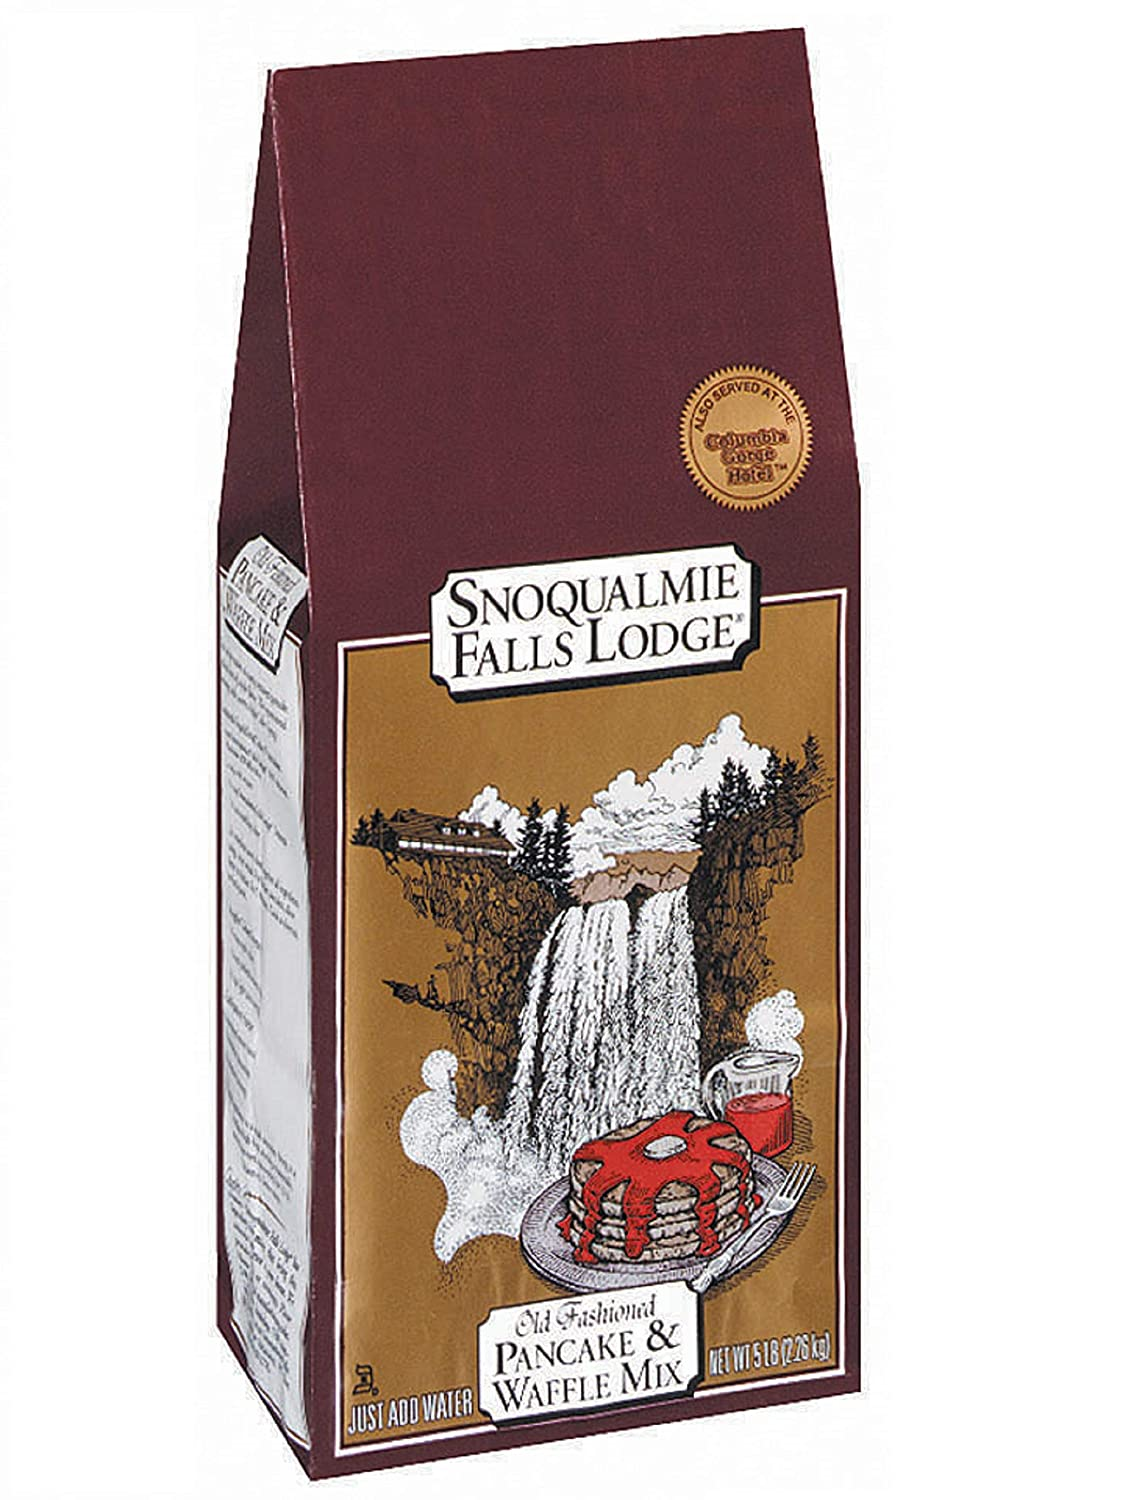 Snoqualmie Falls Lodge Old Fashioned Pancake & Waffle Mix ...